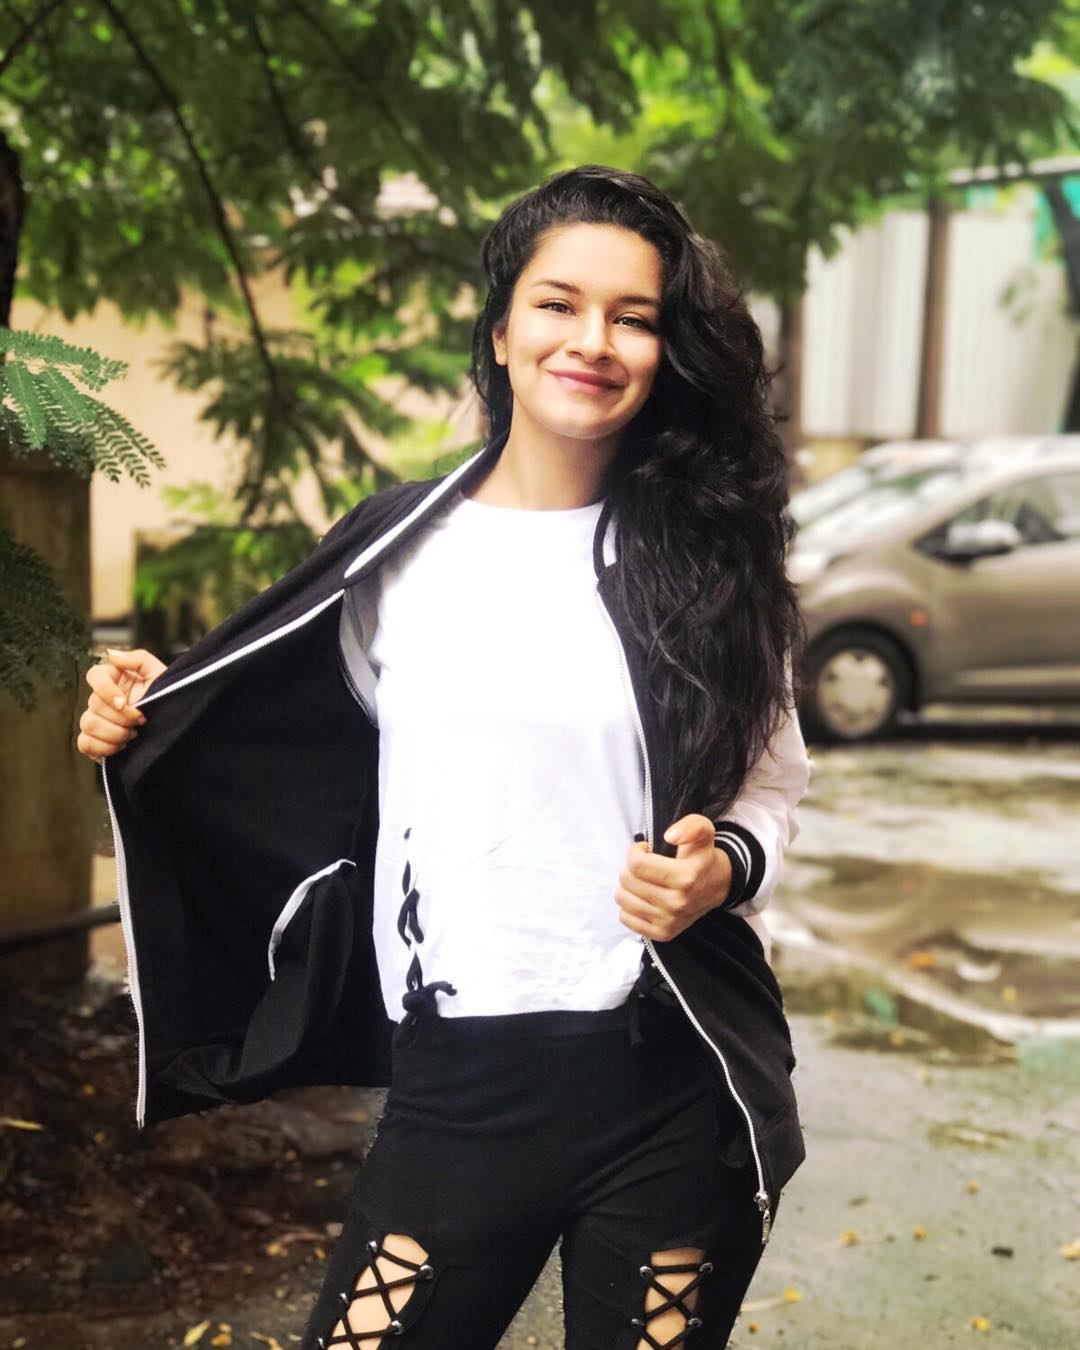 How to contact Avneet Kaur?